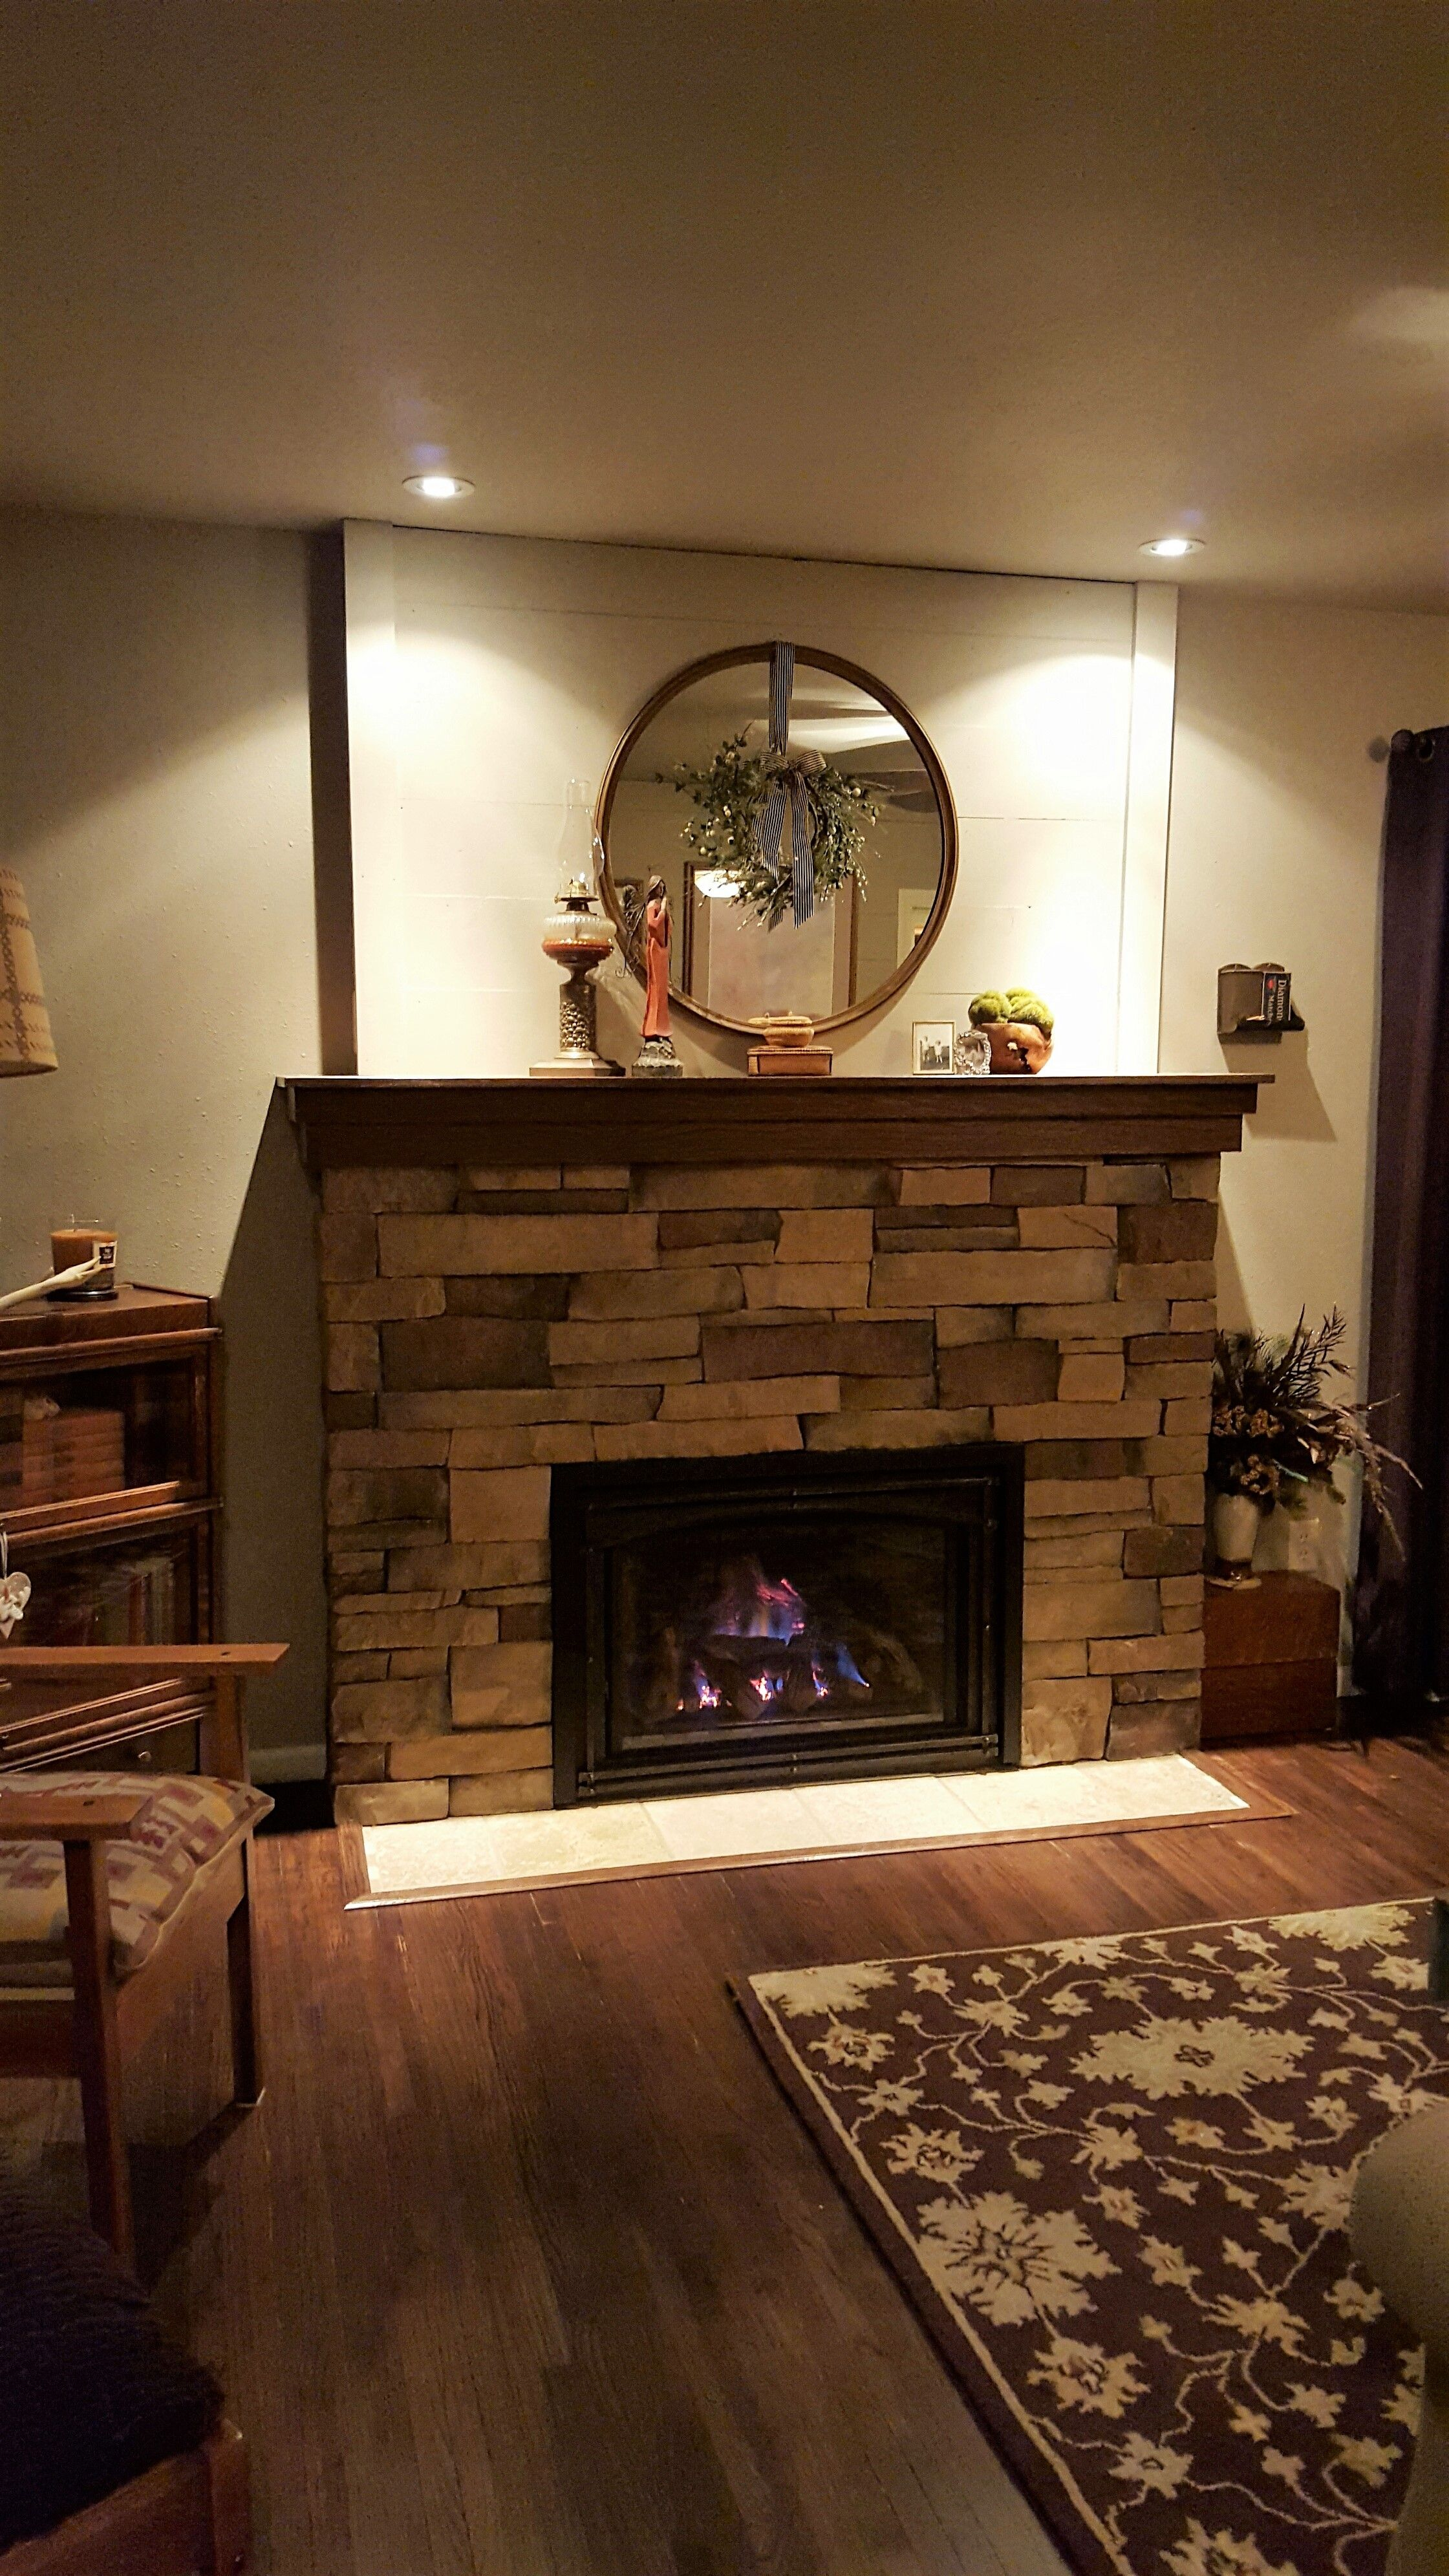 Great American Fireplace Installed This Kozy Heat Gas Insert With